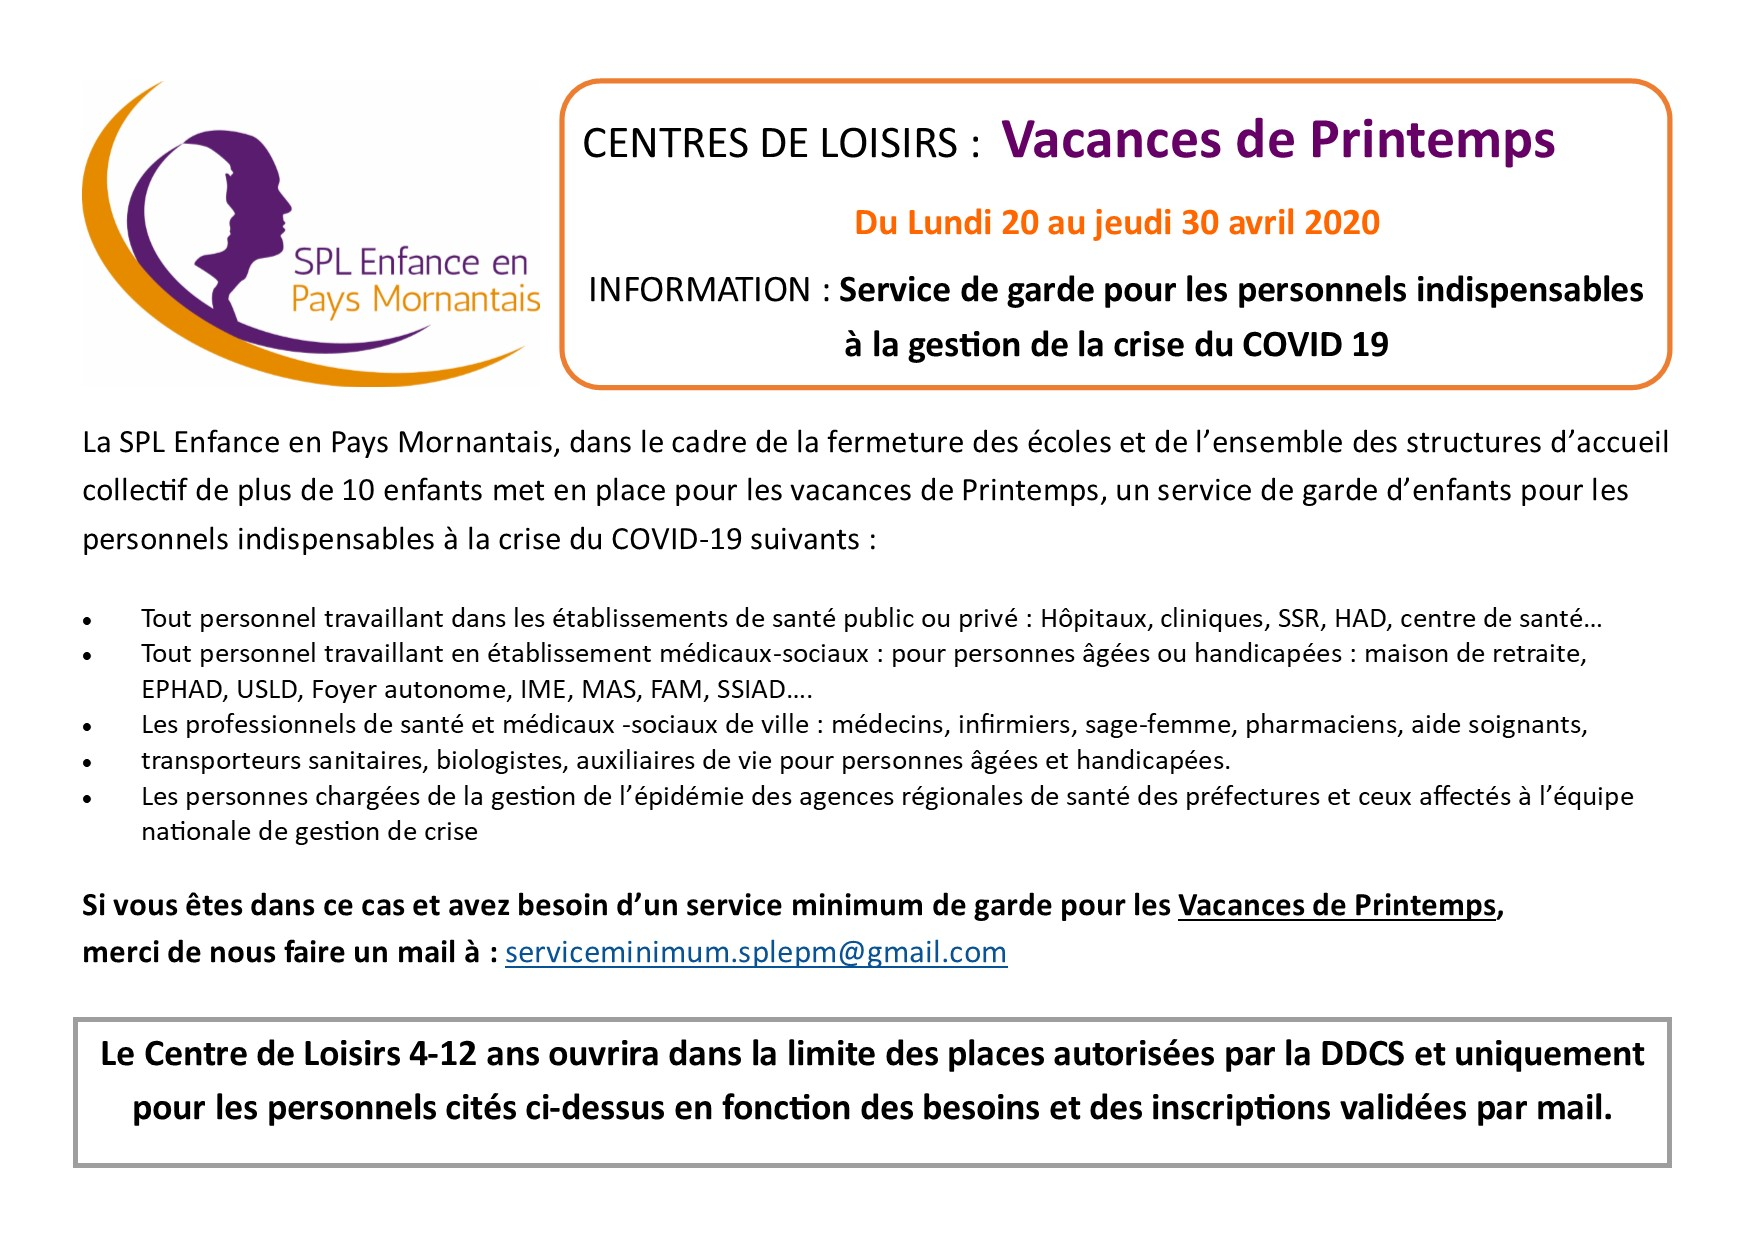 Info vacances Printemps Alsh service Minimum